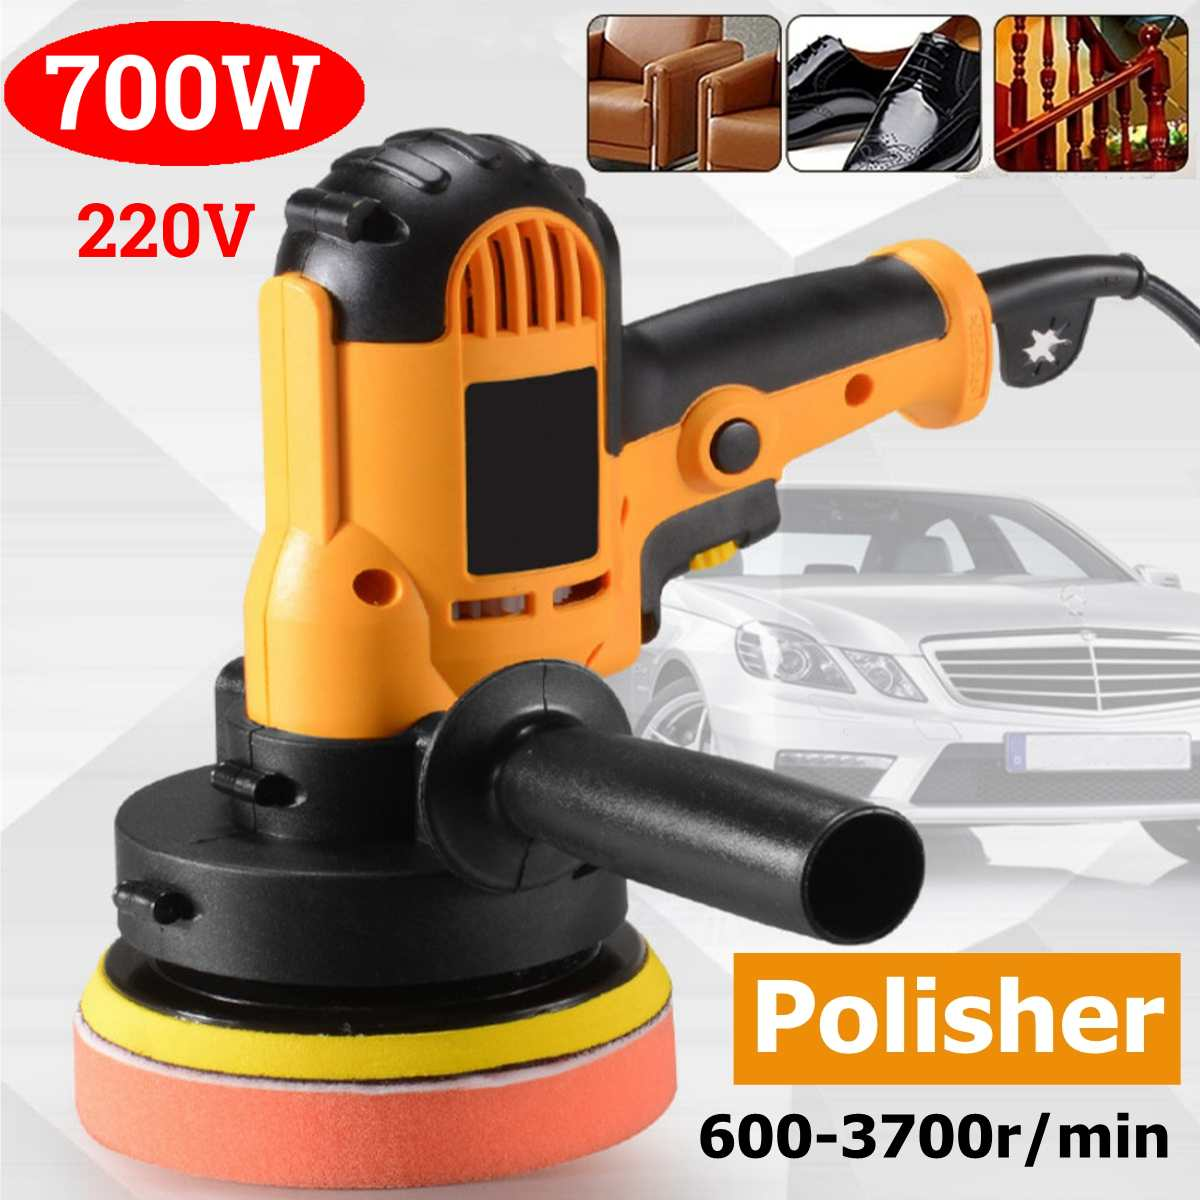 700w Buffer Polisher Machine Electric Car Polisher Waxer Variable Speeds Tool Household Waxing Polishing Machine